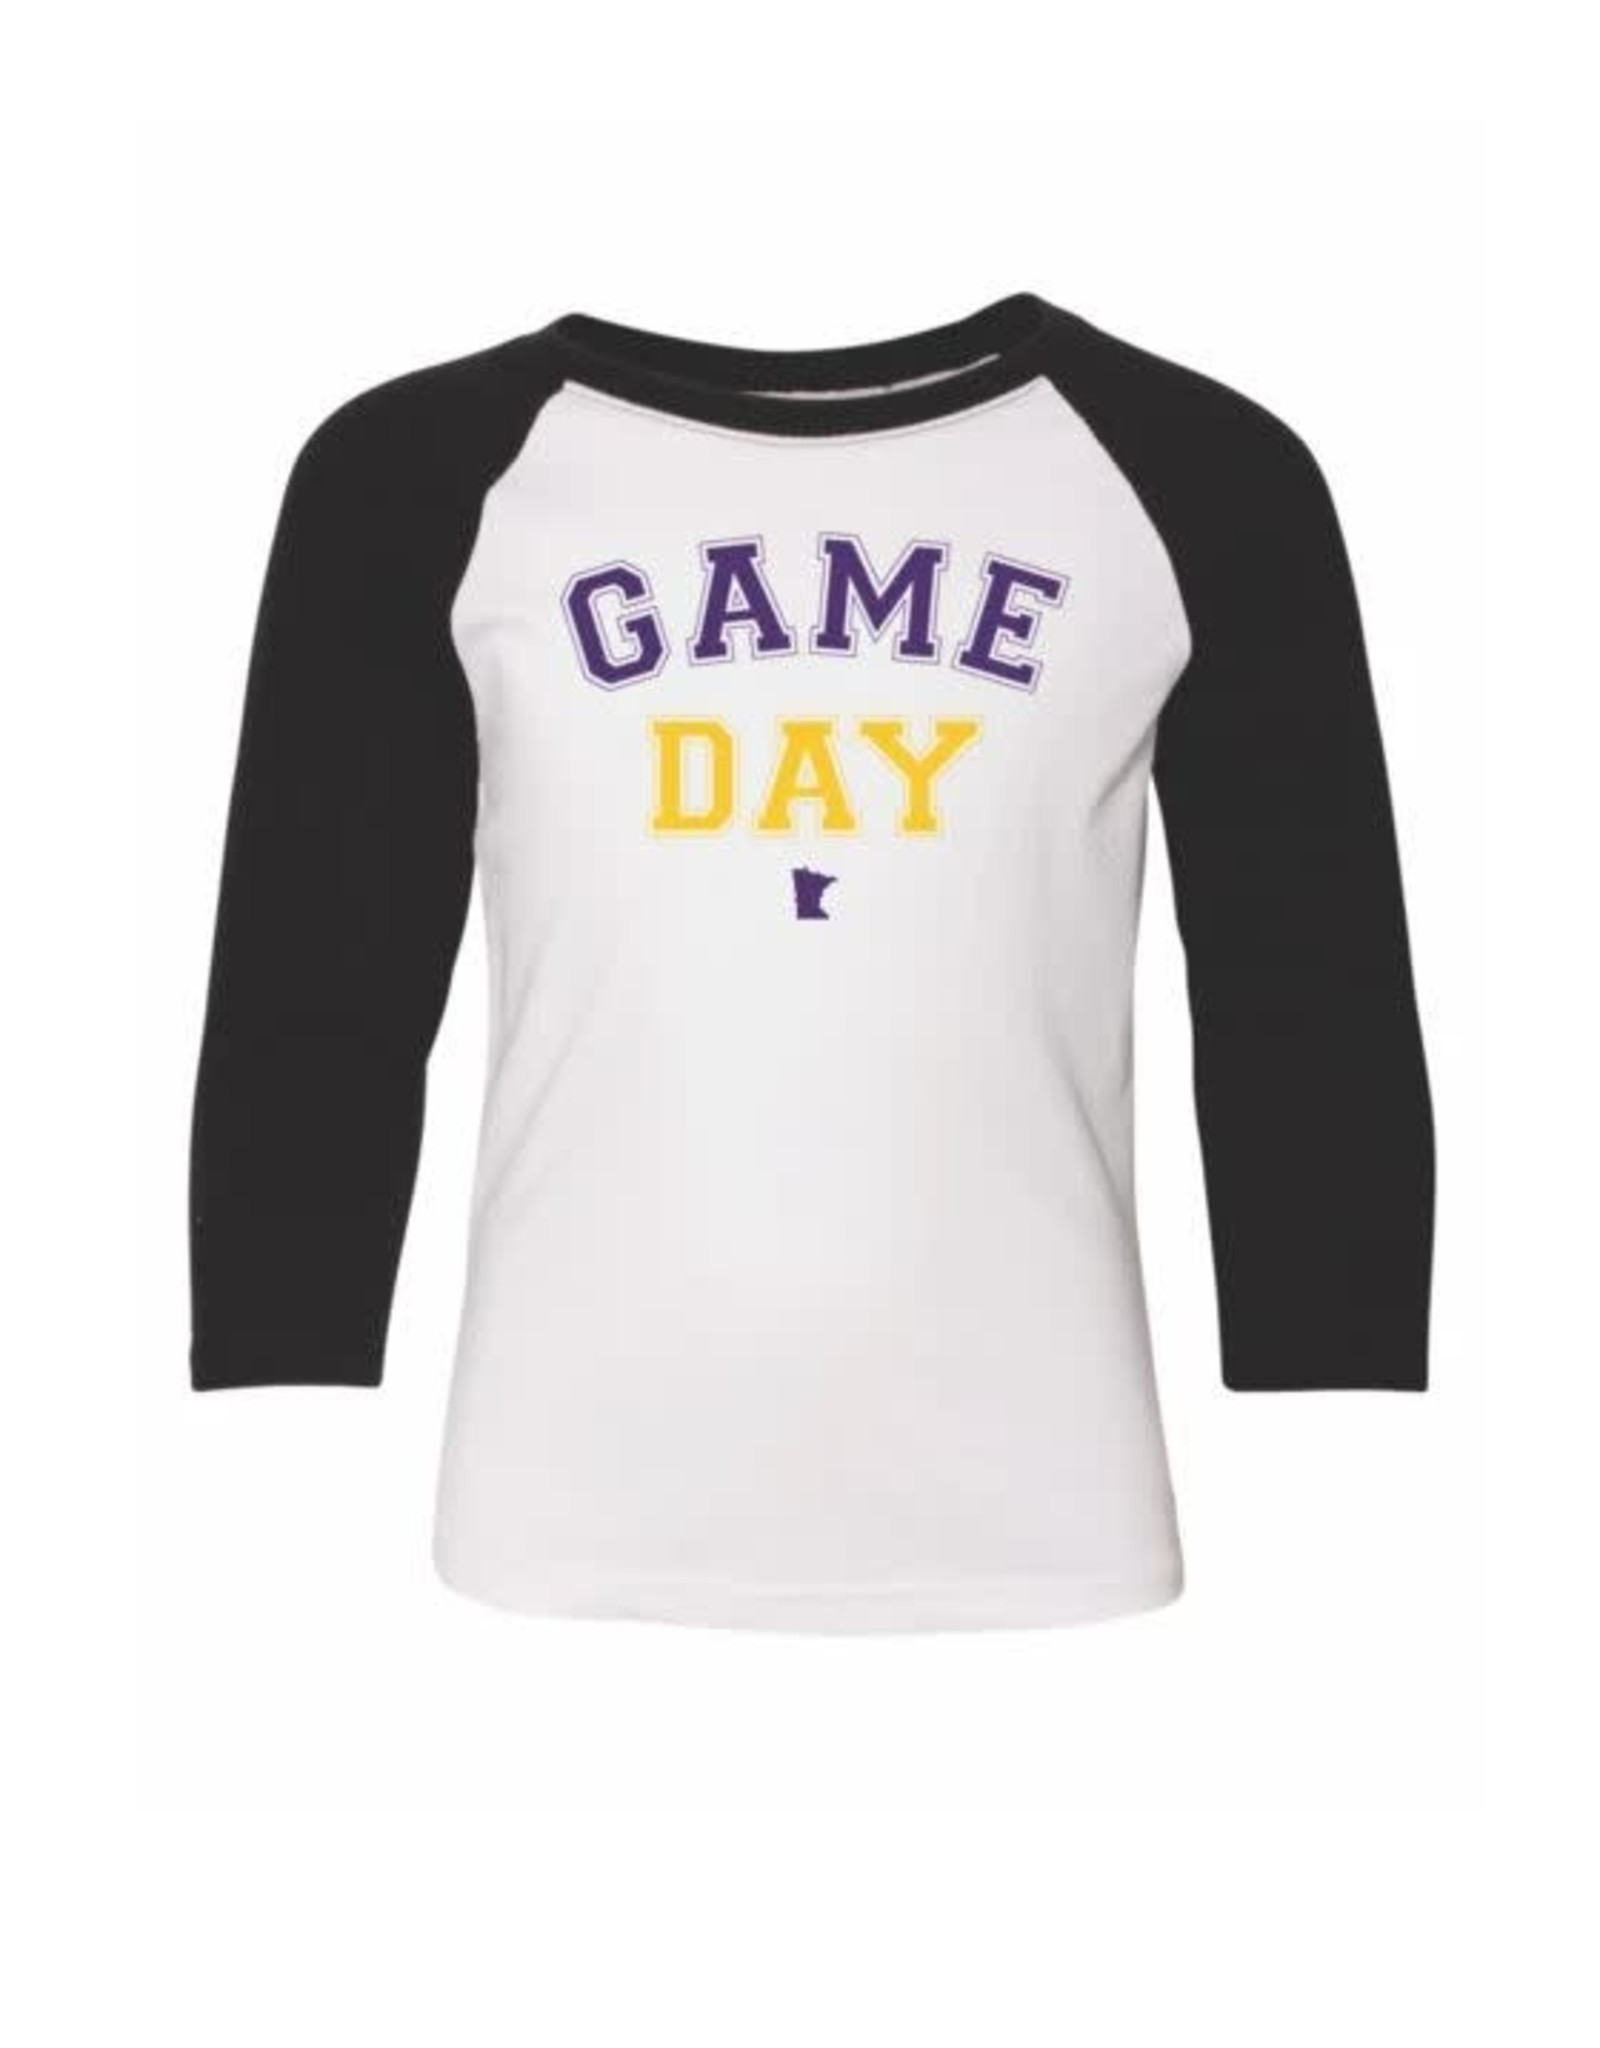 MINNESOTA GAME DAY YOUTH RAGLAN